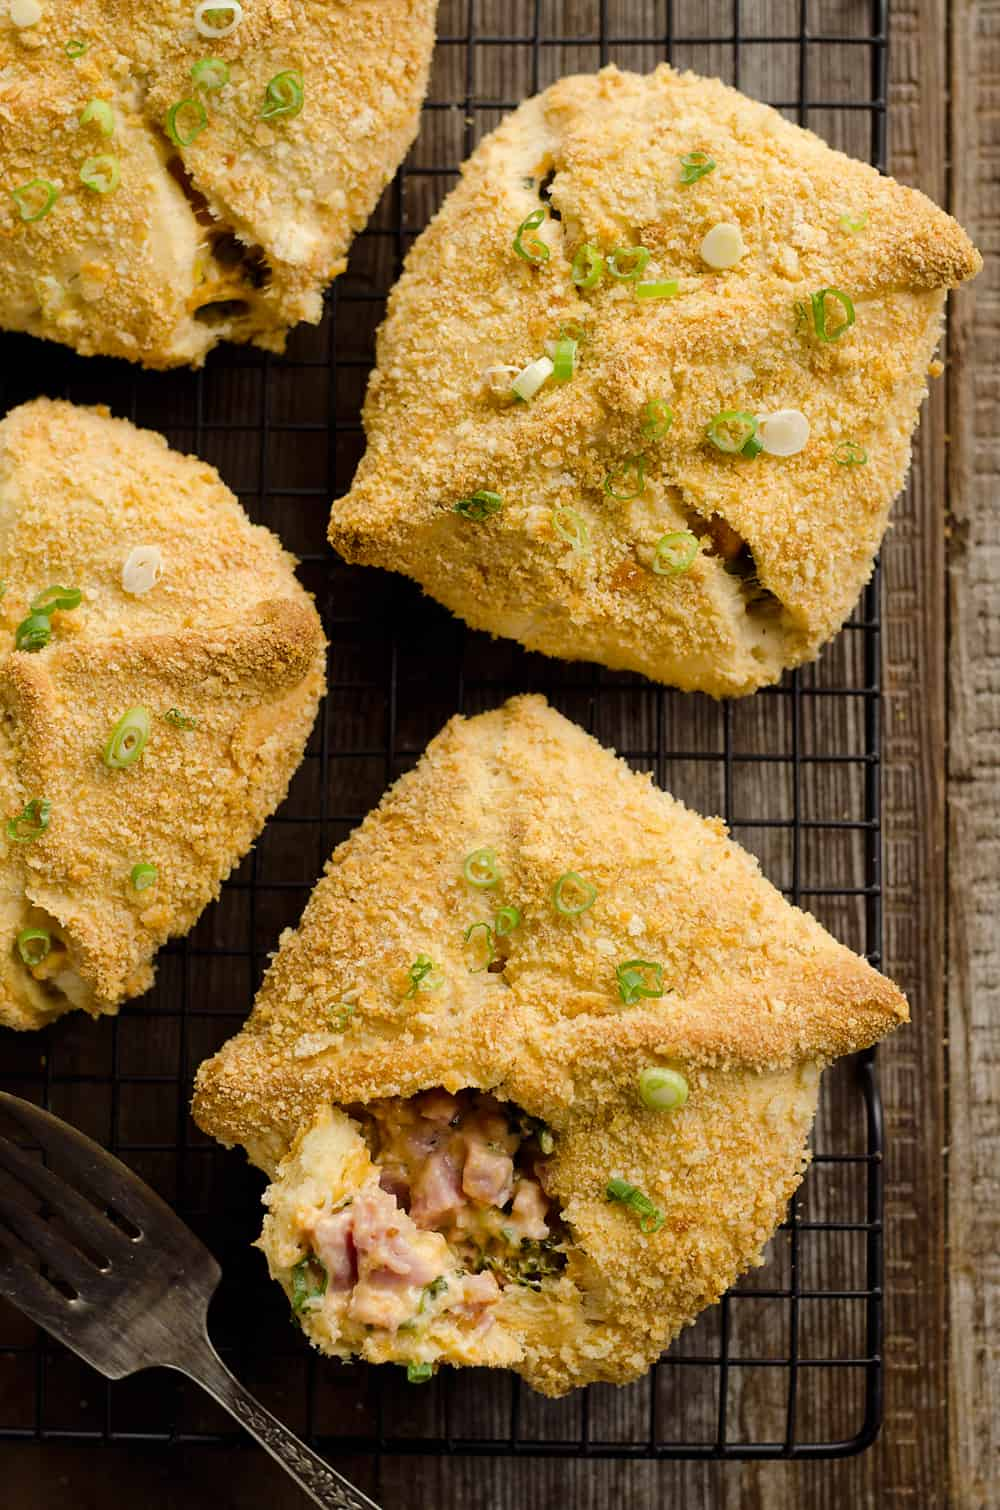 Cheesy Hot Ham & Broccoli Crescent Pockets are a family friendly dinner idea perfect for using up leftover ham! Flaky crescents are filled with a cheddar, broccoli and ham mixture and topped with buttery croutons.